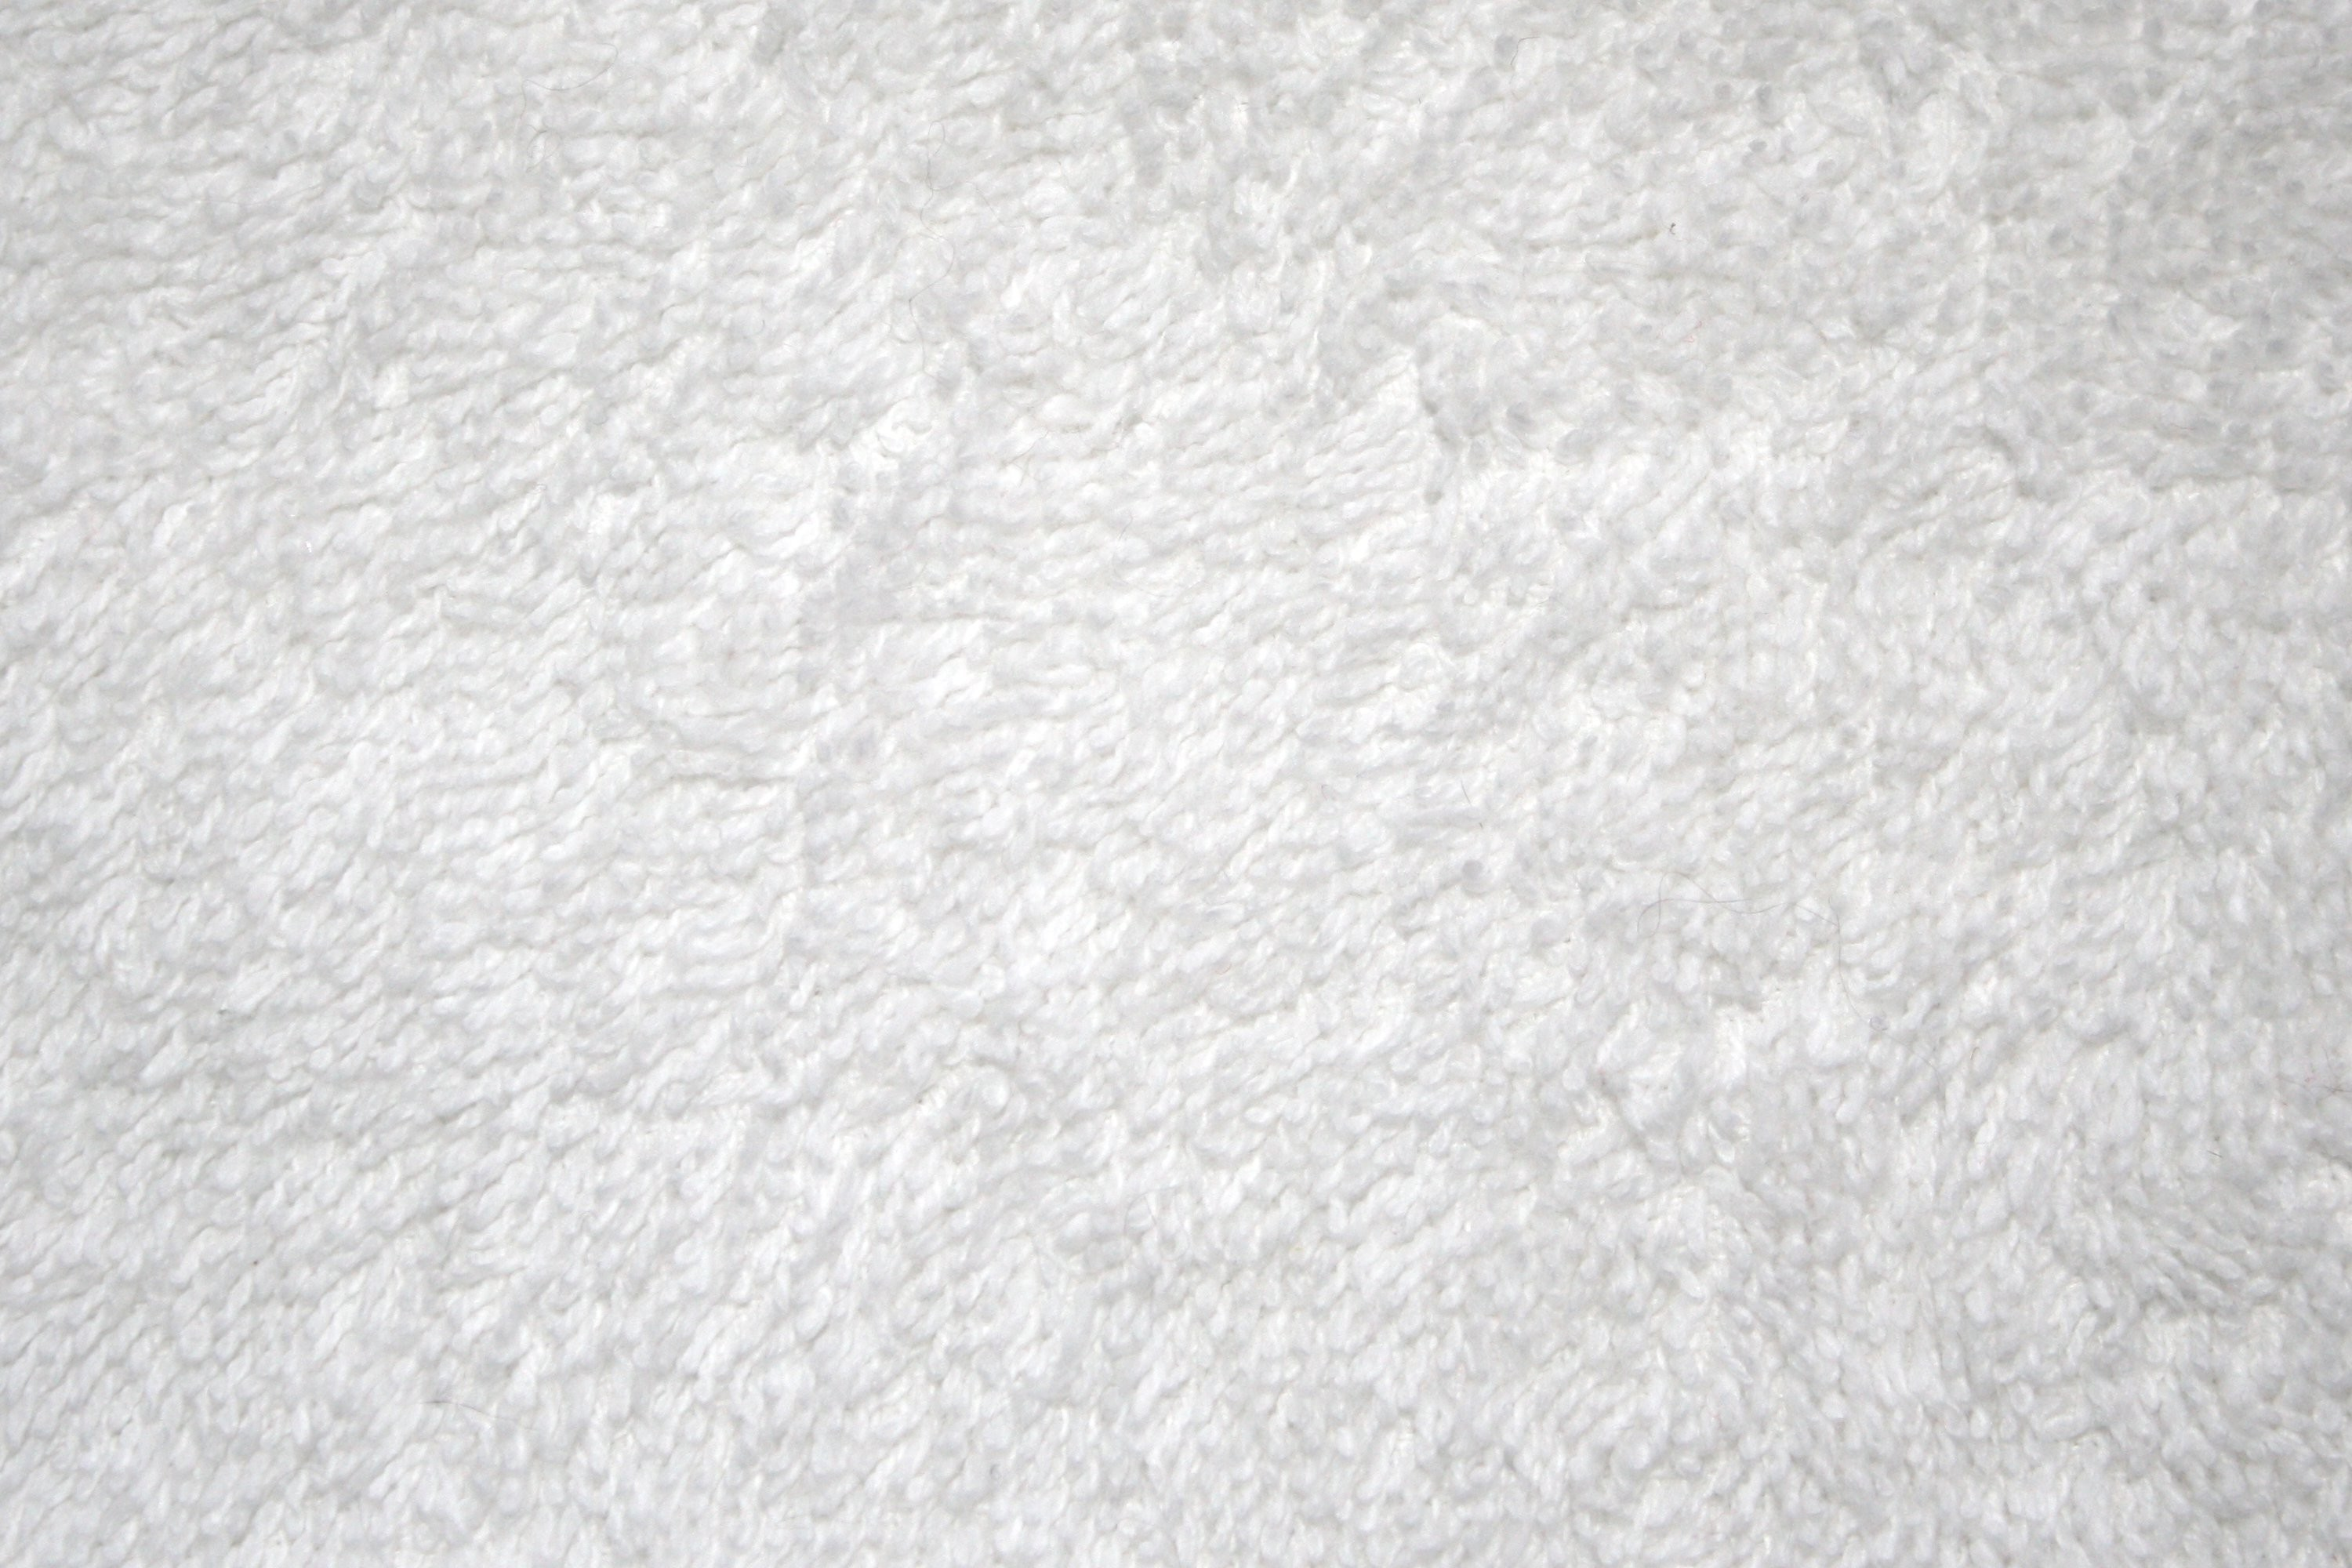 White texture background download free awesome hd for Texture background free download